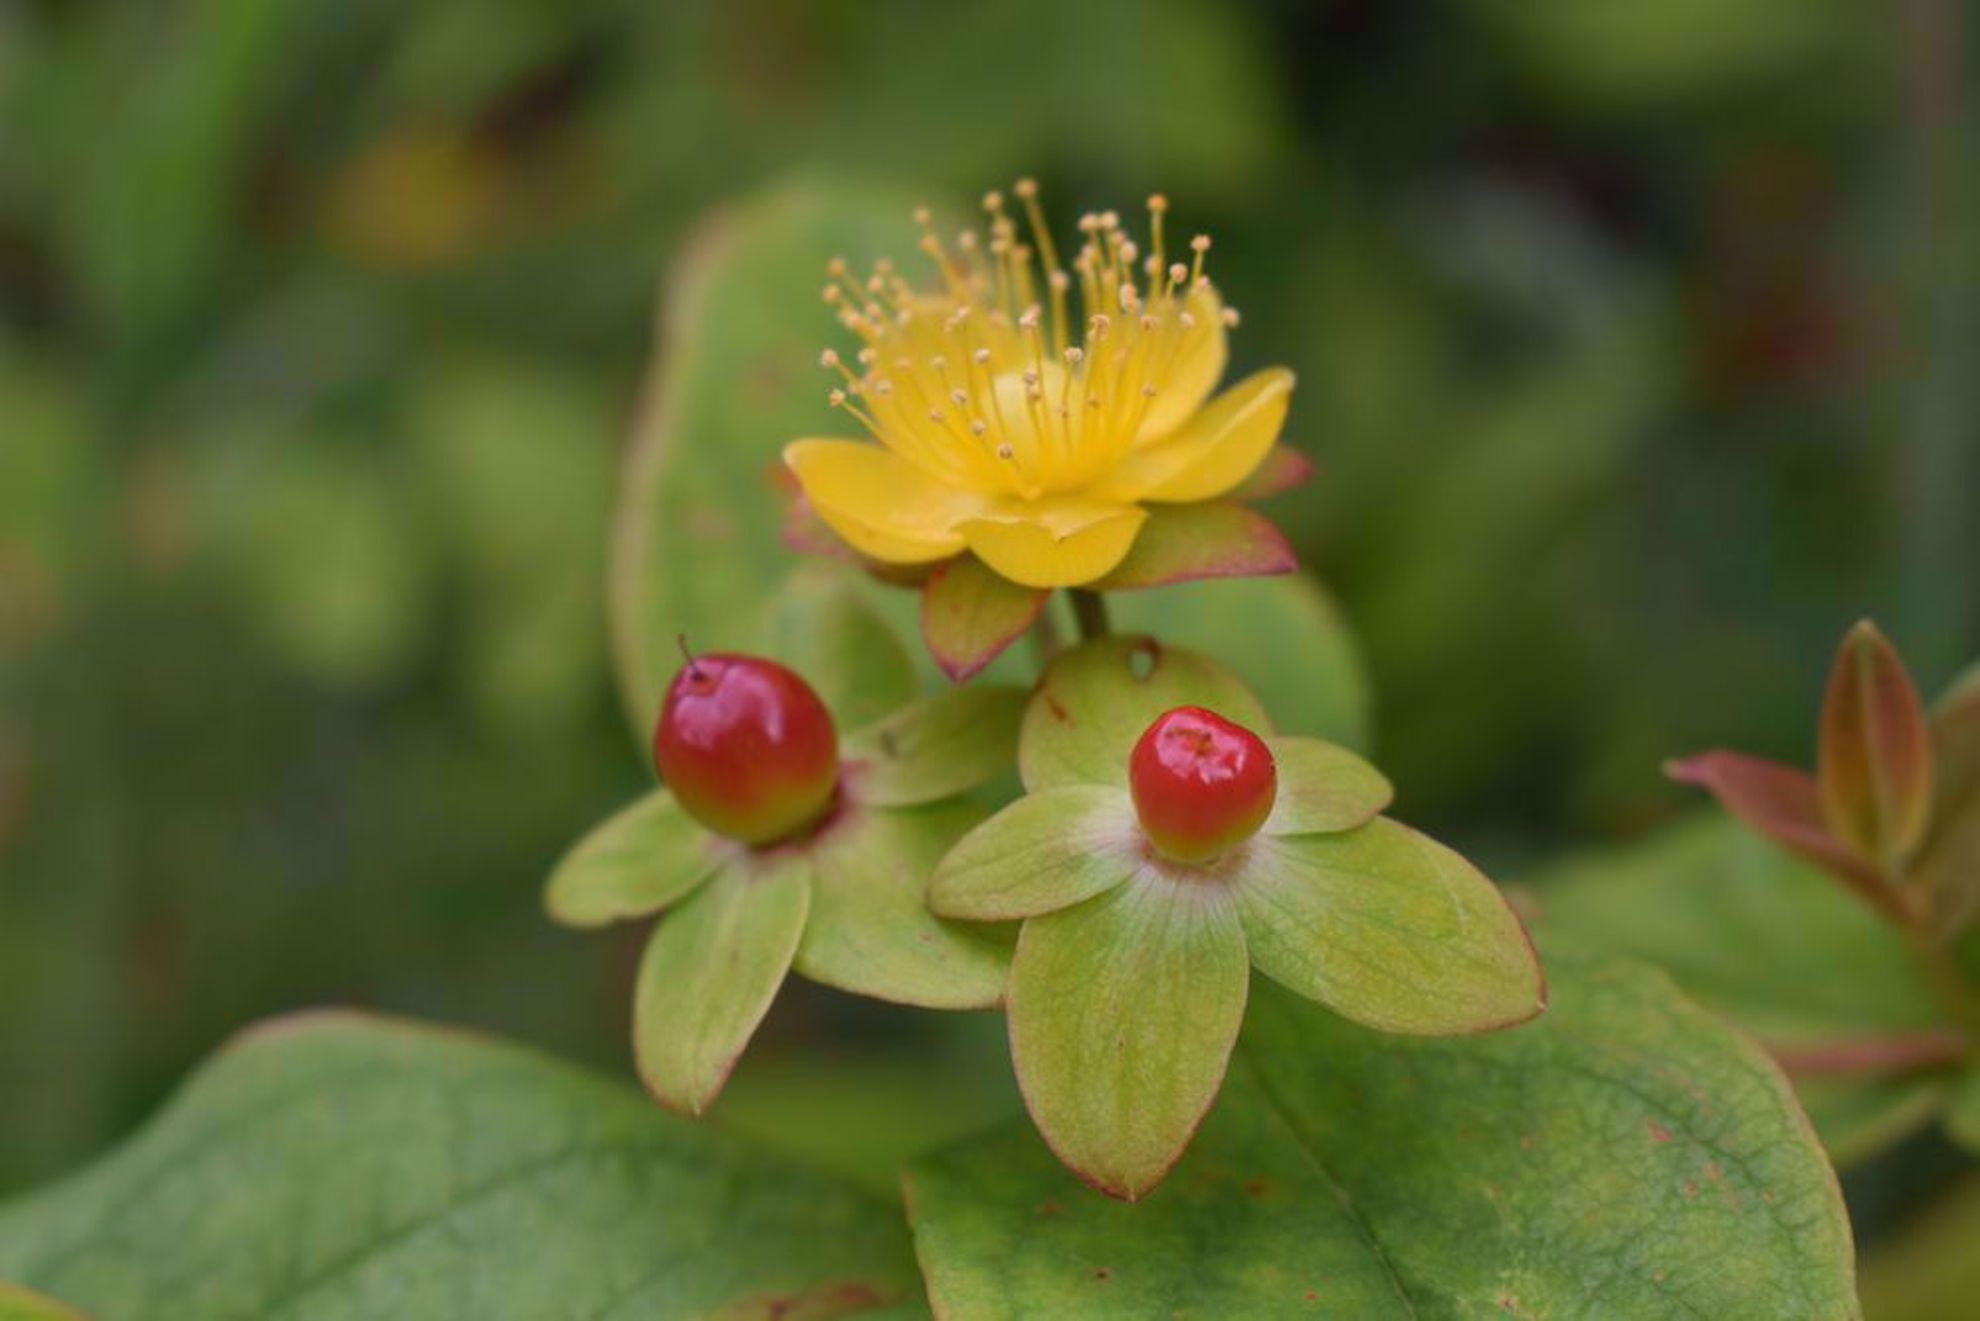 Wildflower and berries near Pucon Chile